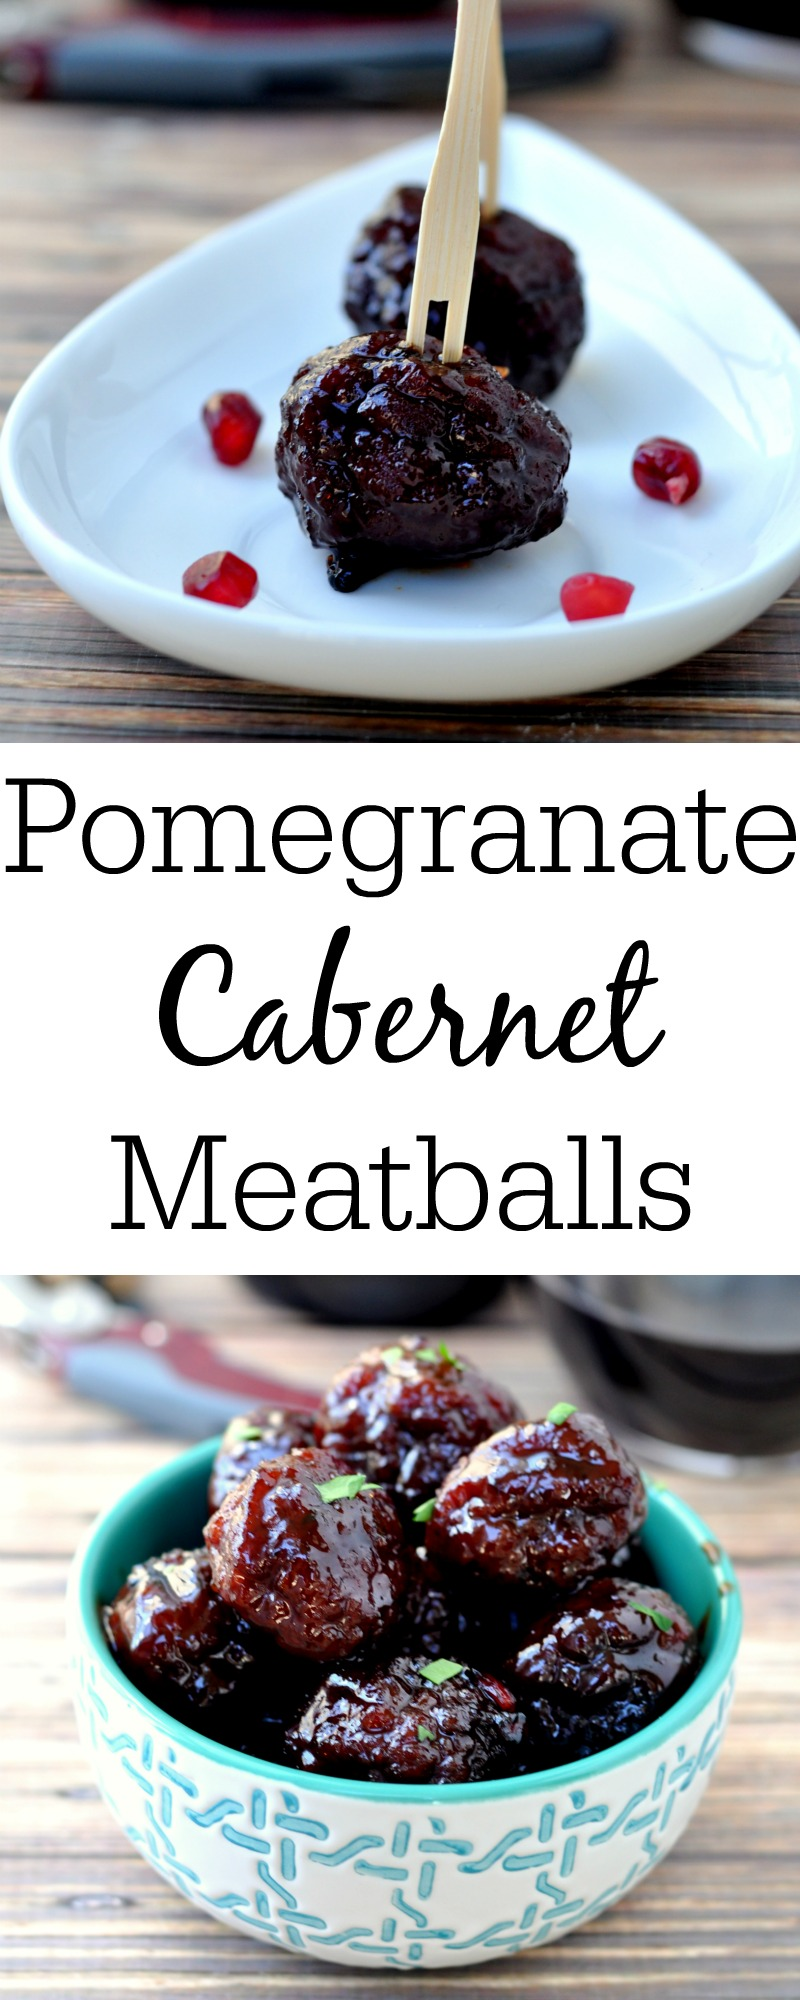 Pomegranate Cabernet Meatballs are the perfect bite sized appertizer for your next party...big or small...low key or fancy.